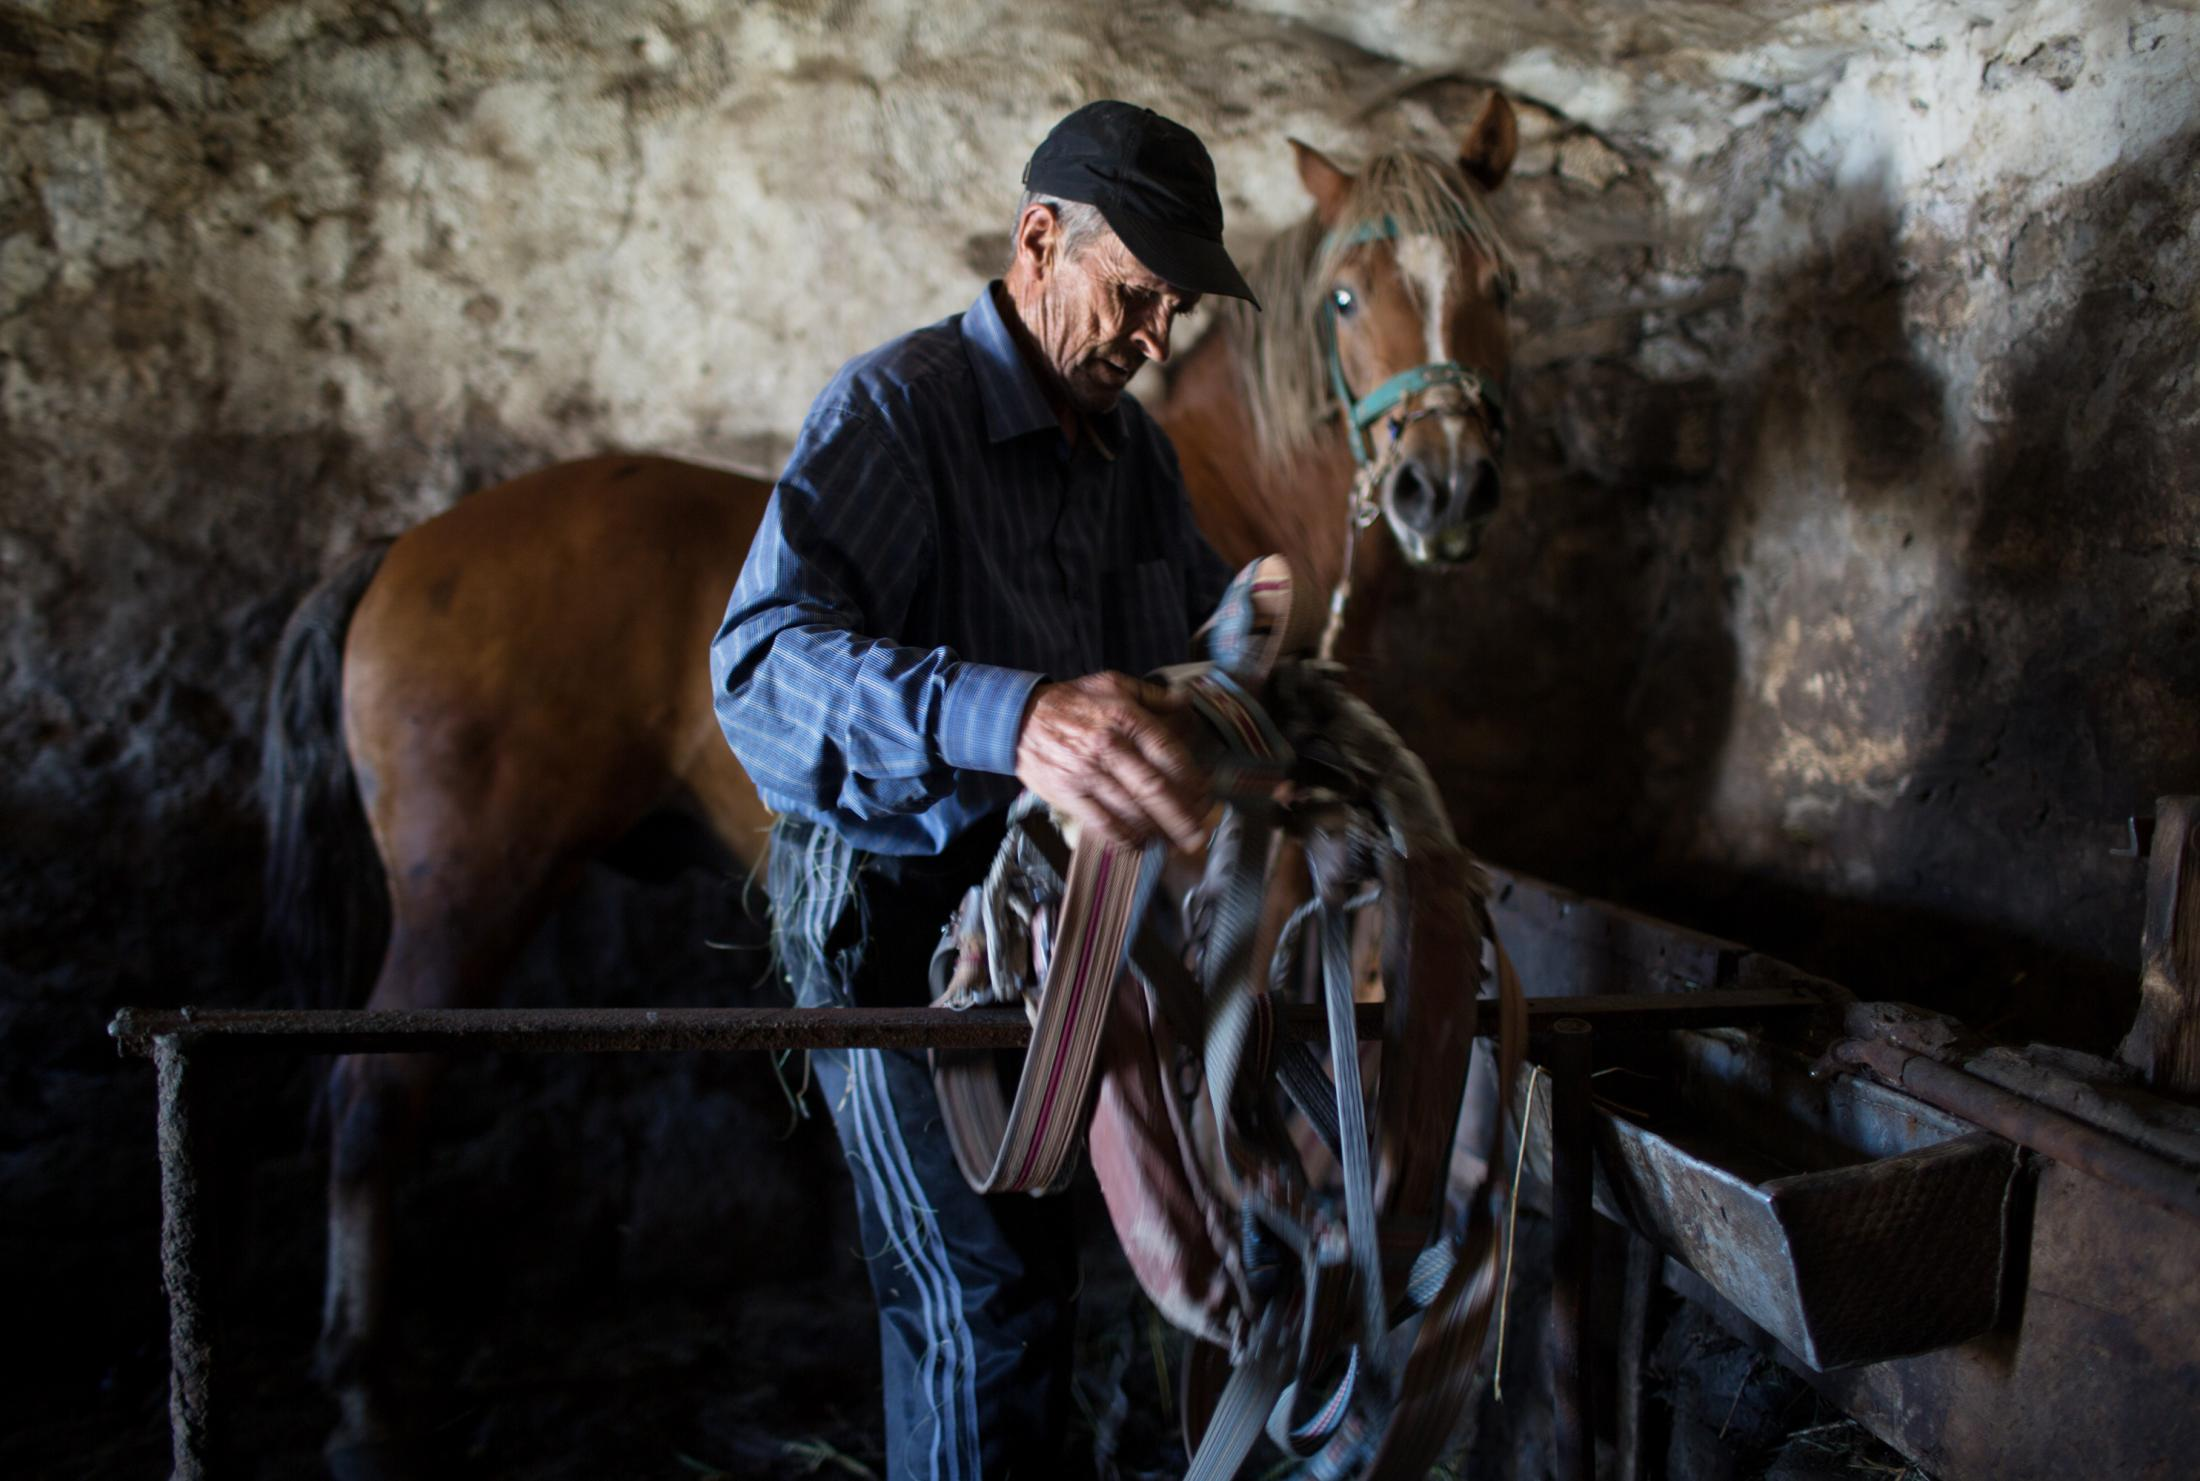 A Doukhobory farmer takes care of his horse after having worked the filed. The barn into which the horse is kept is part of his parents home built more than 100 years ago when the first Doukhobories arrived in the region.